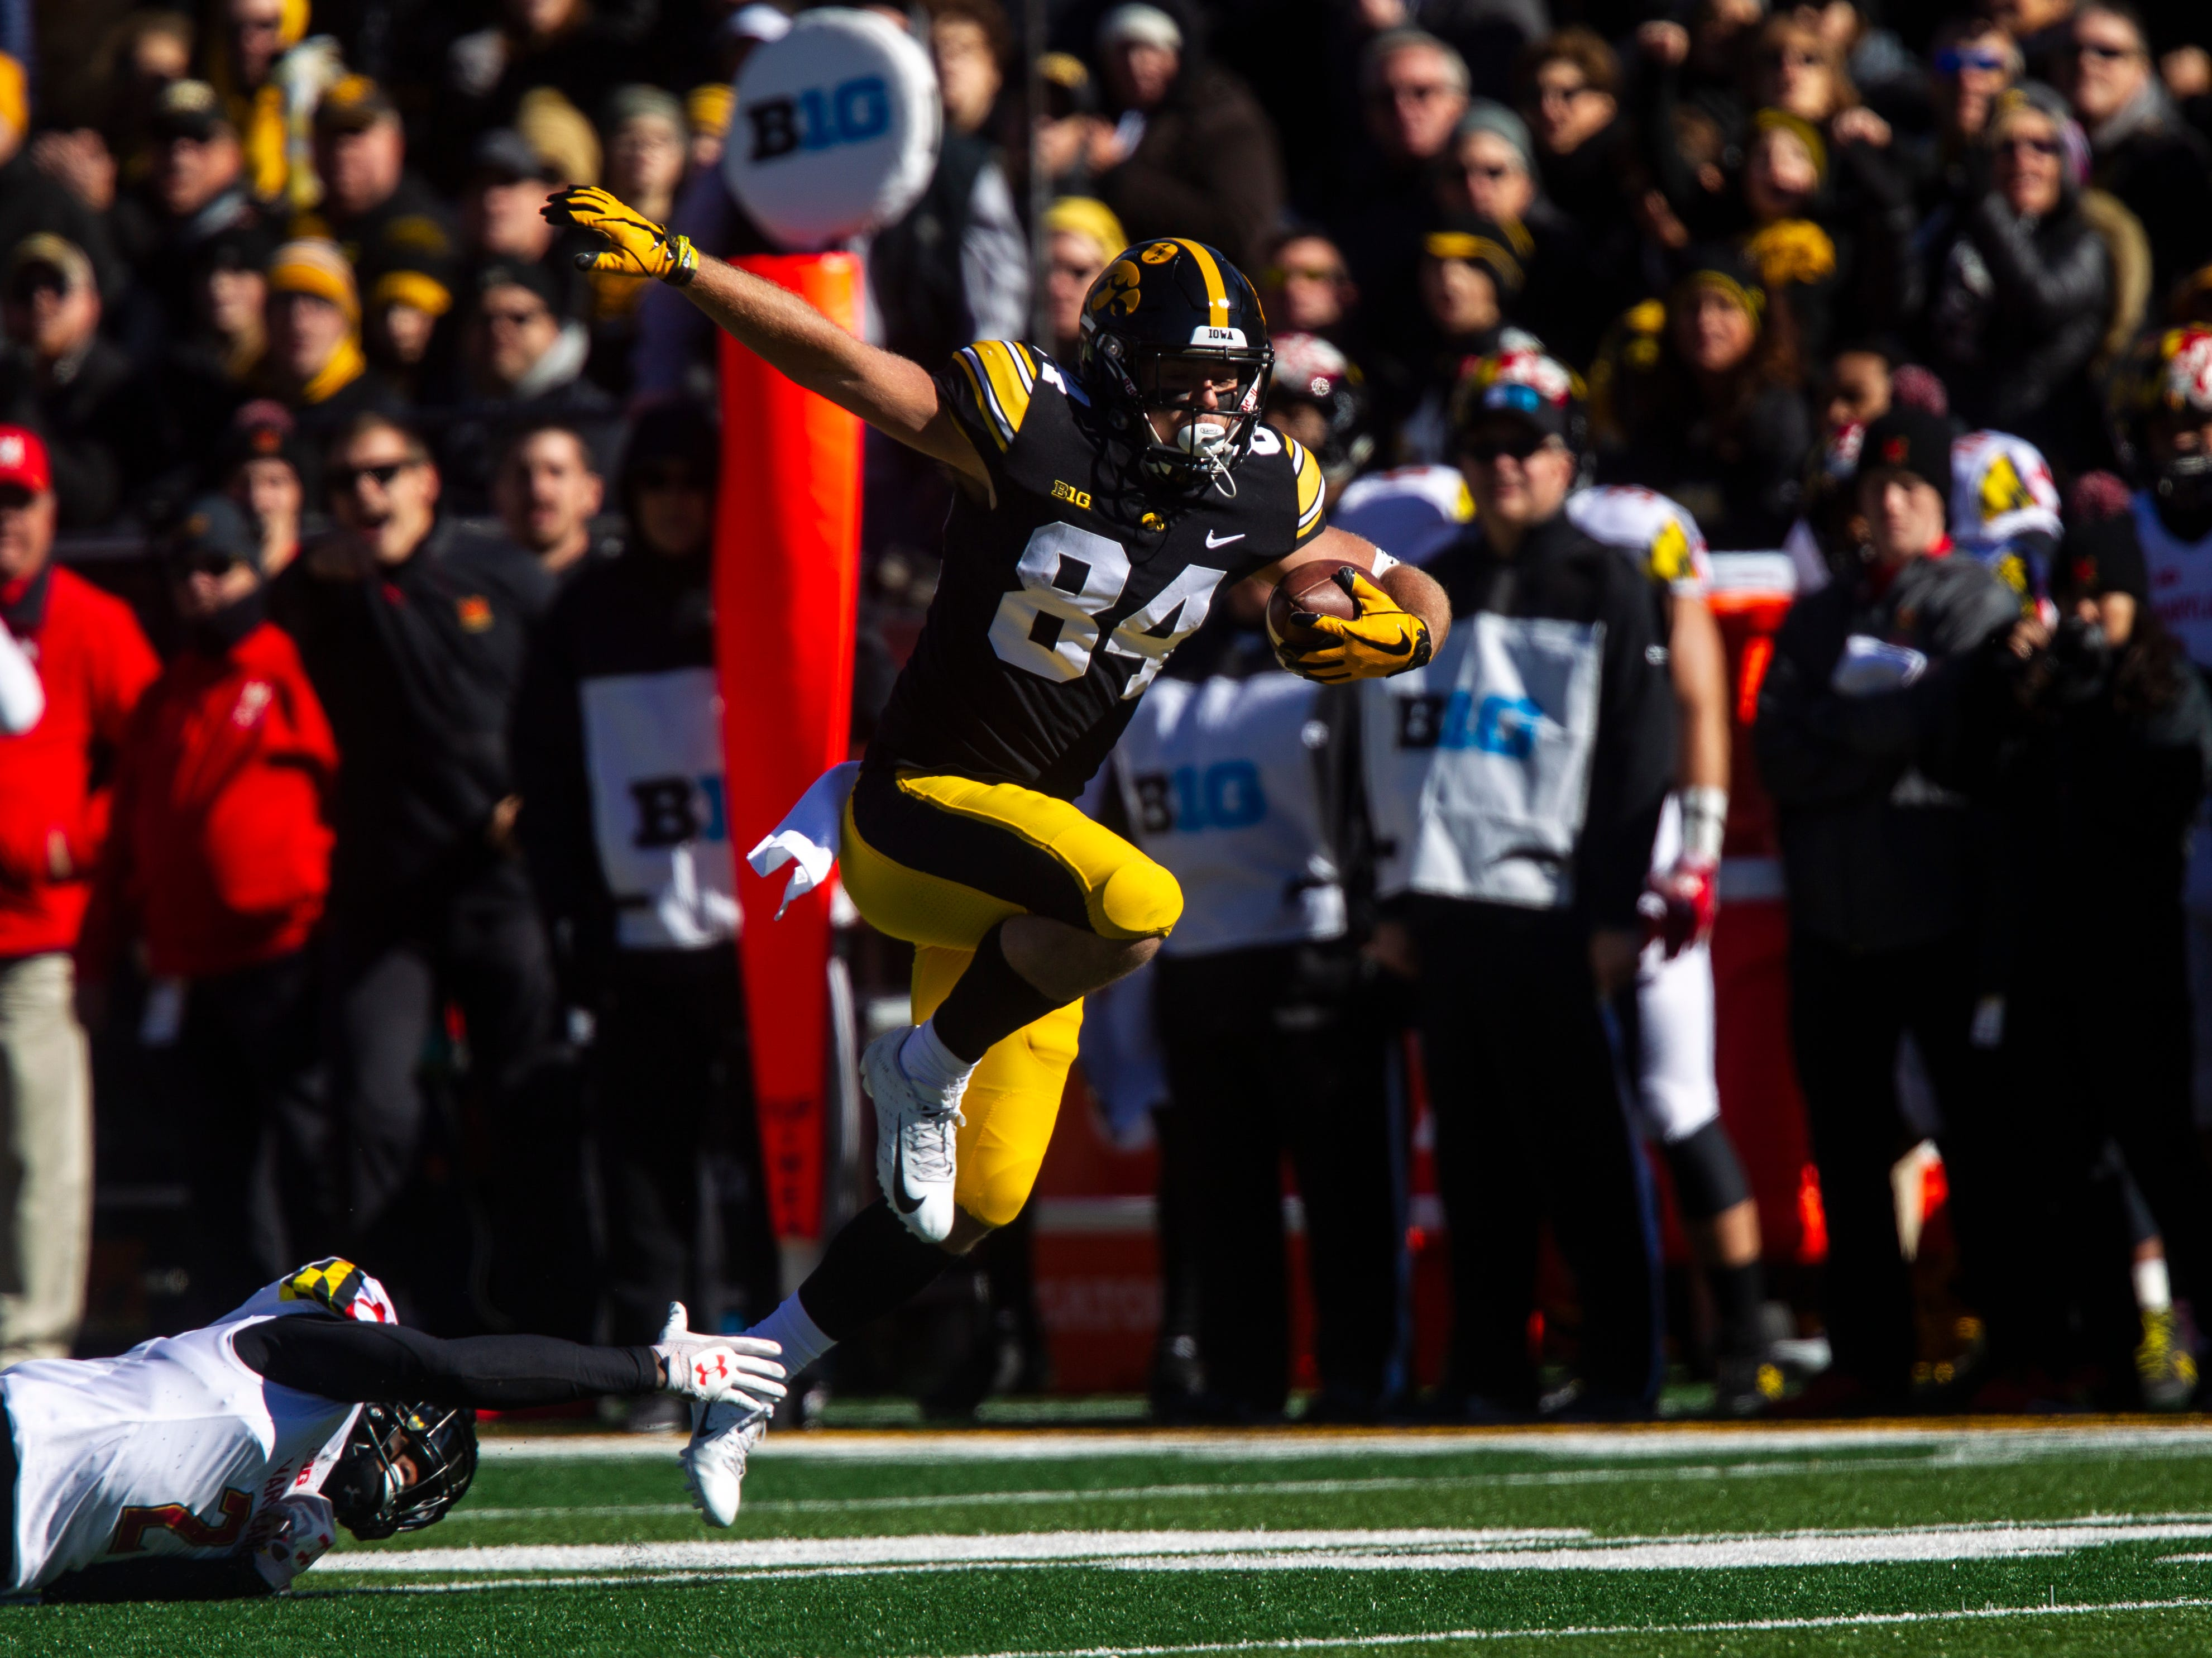 Iowa wide receiver Nick Easley (84) steps out of a tackle from Maryland defensive back RaVon Davis (2) during an NCAA Big Ten conference football game on Saturday, Oct. 20, 2018, at Kinnick Stadium in Iowa City.